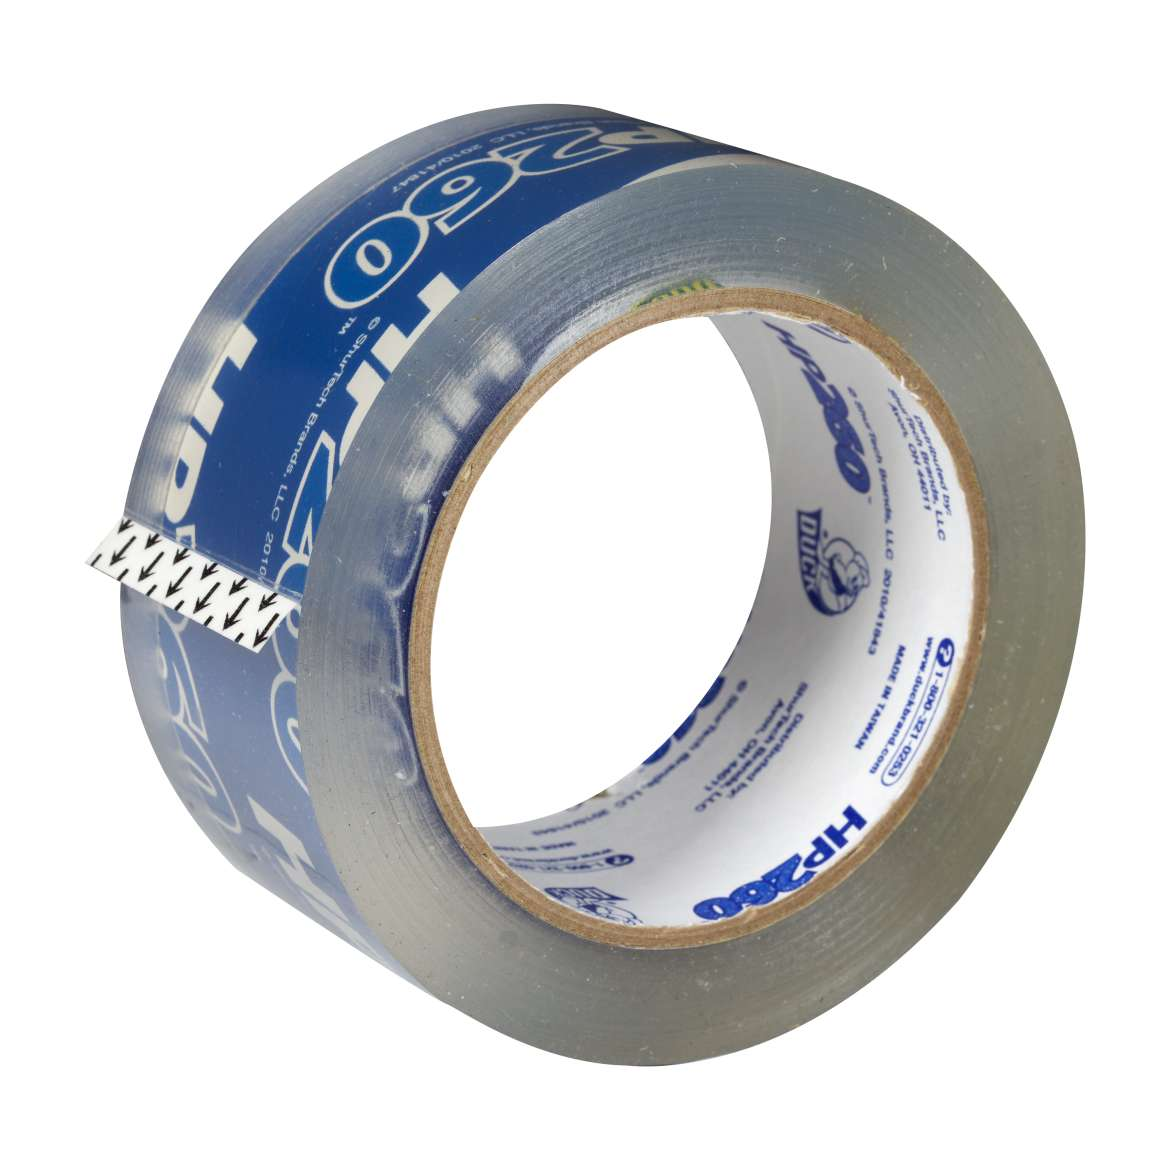 HP260™ High Performance Premium Packing Tape